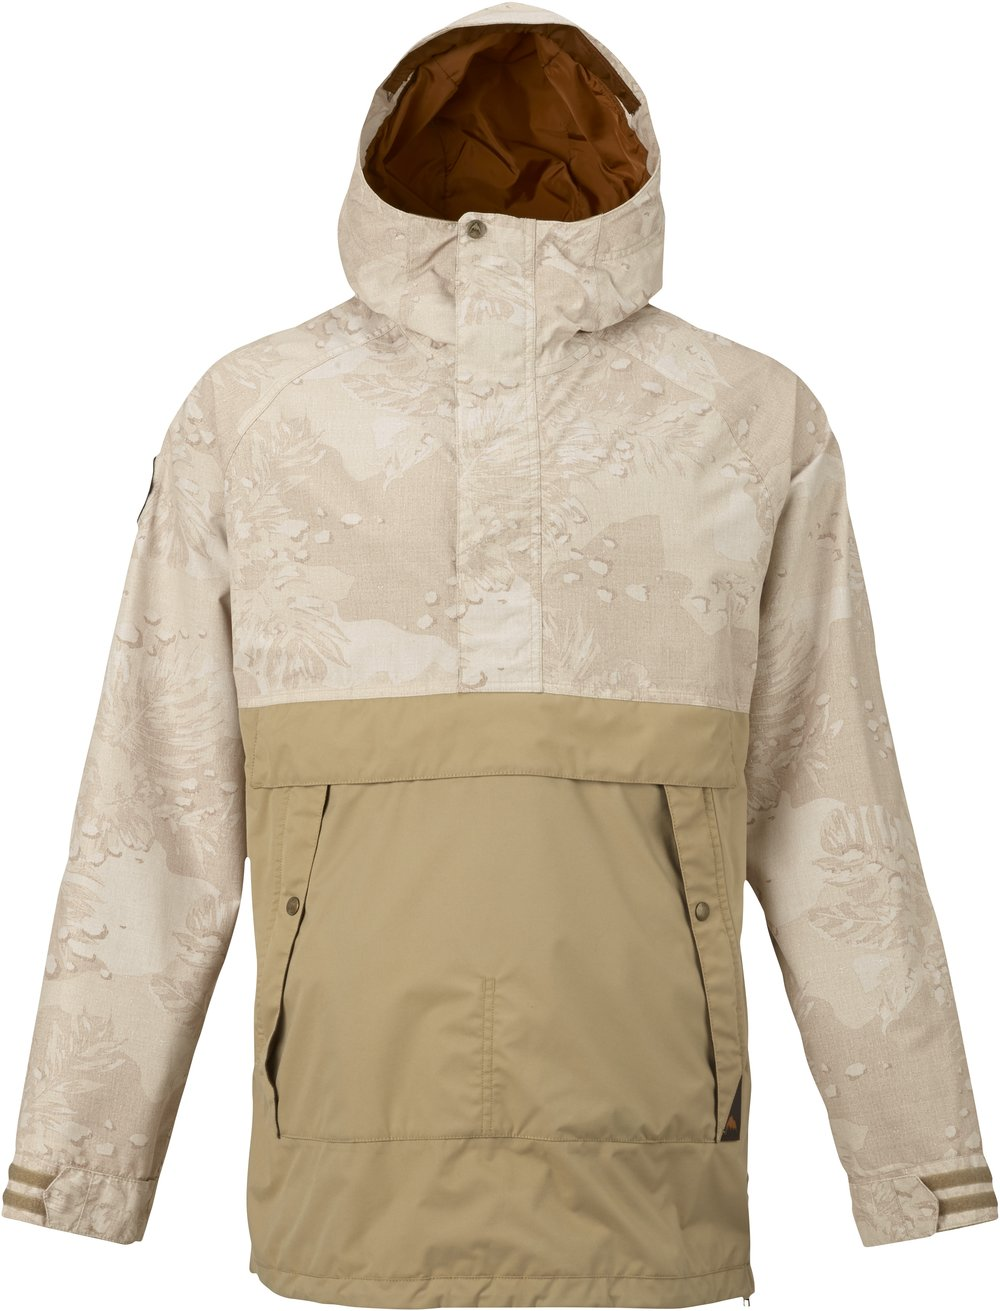 Burton Rambler Anorak Jacket at Amazon Fashion, $219.95